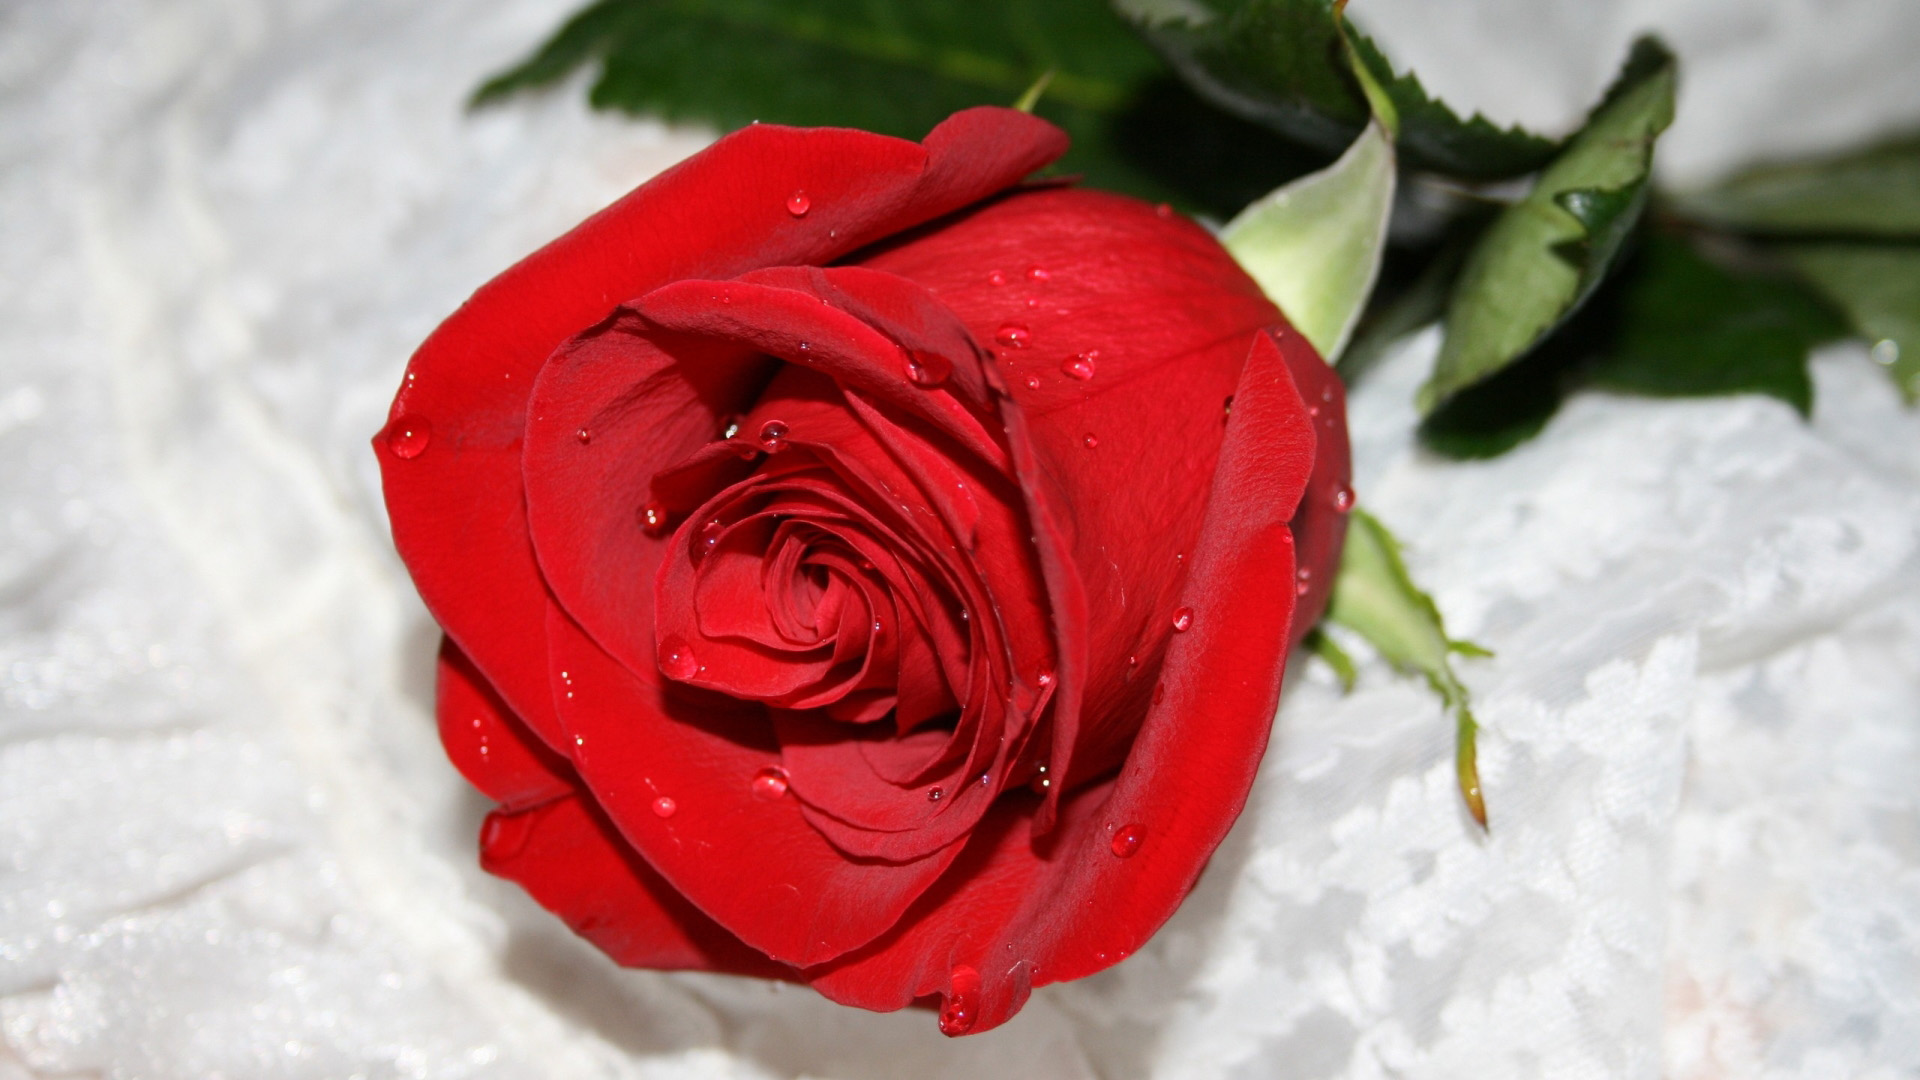 Beautiful Red Rose Images Hd Wallpapers 2017